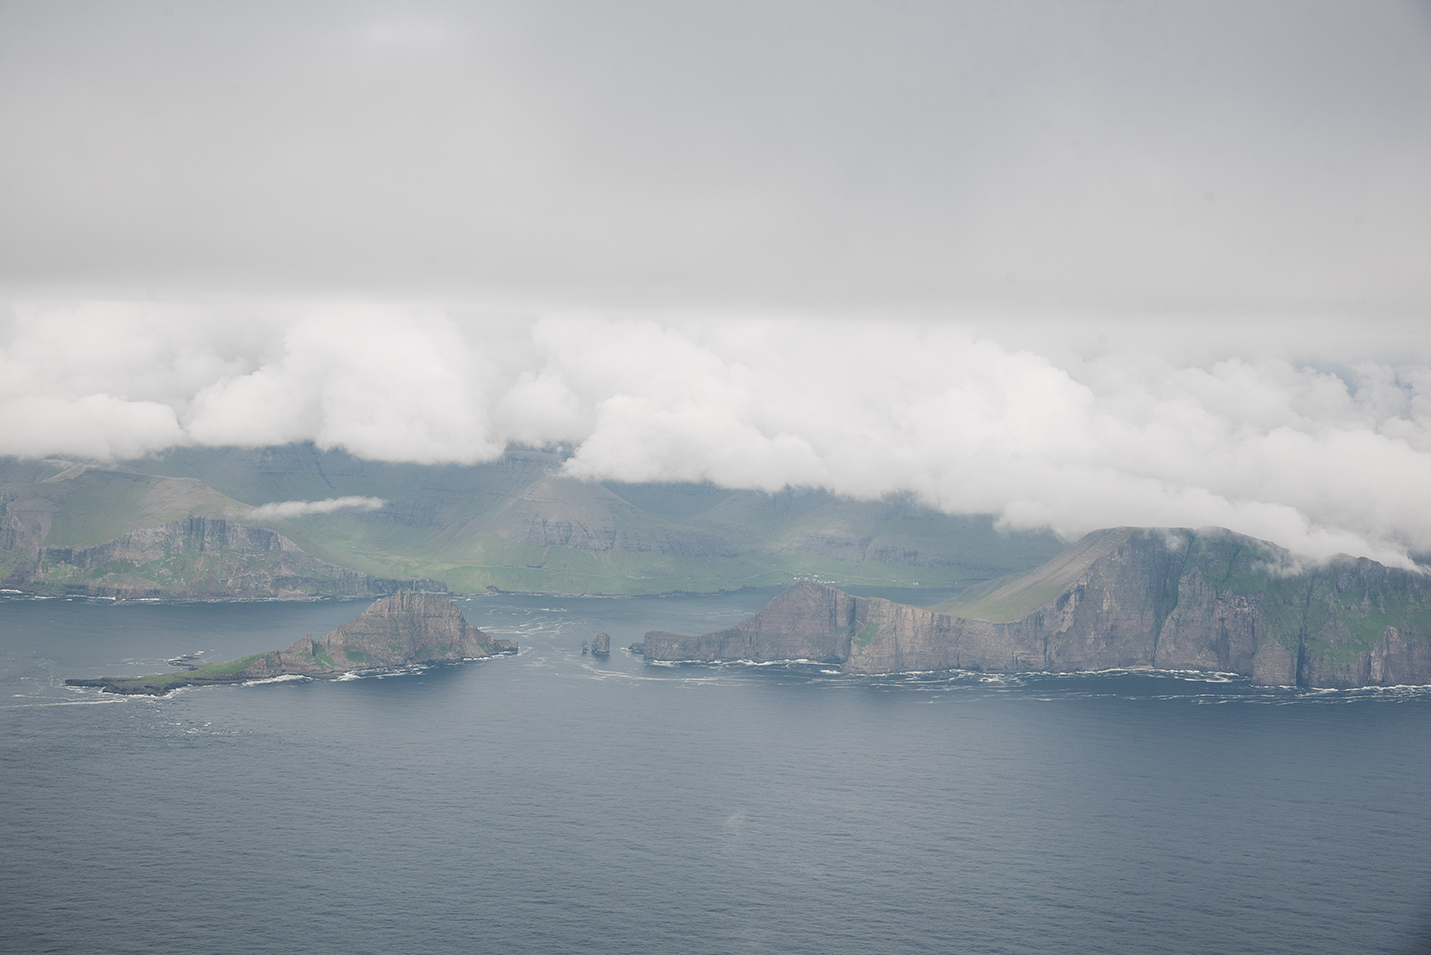 FaroeIslands_Day1_22-6-17_TAL-2.jpg